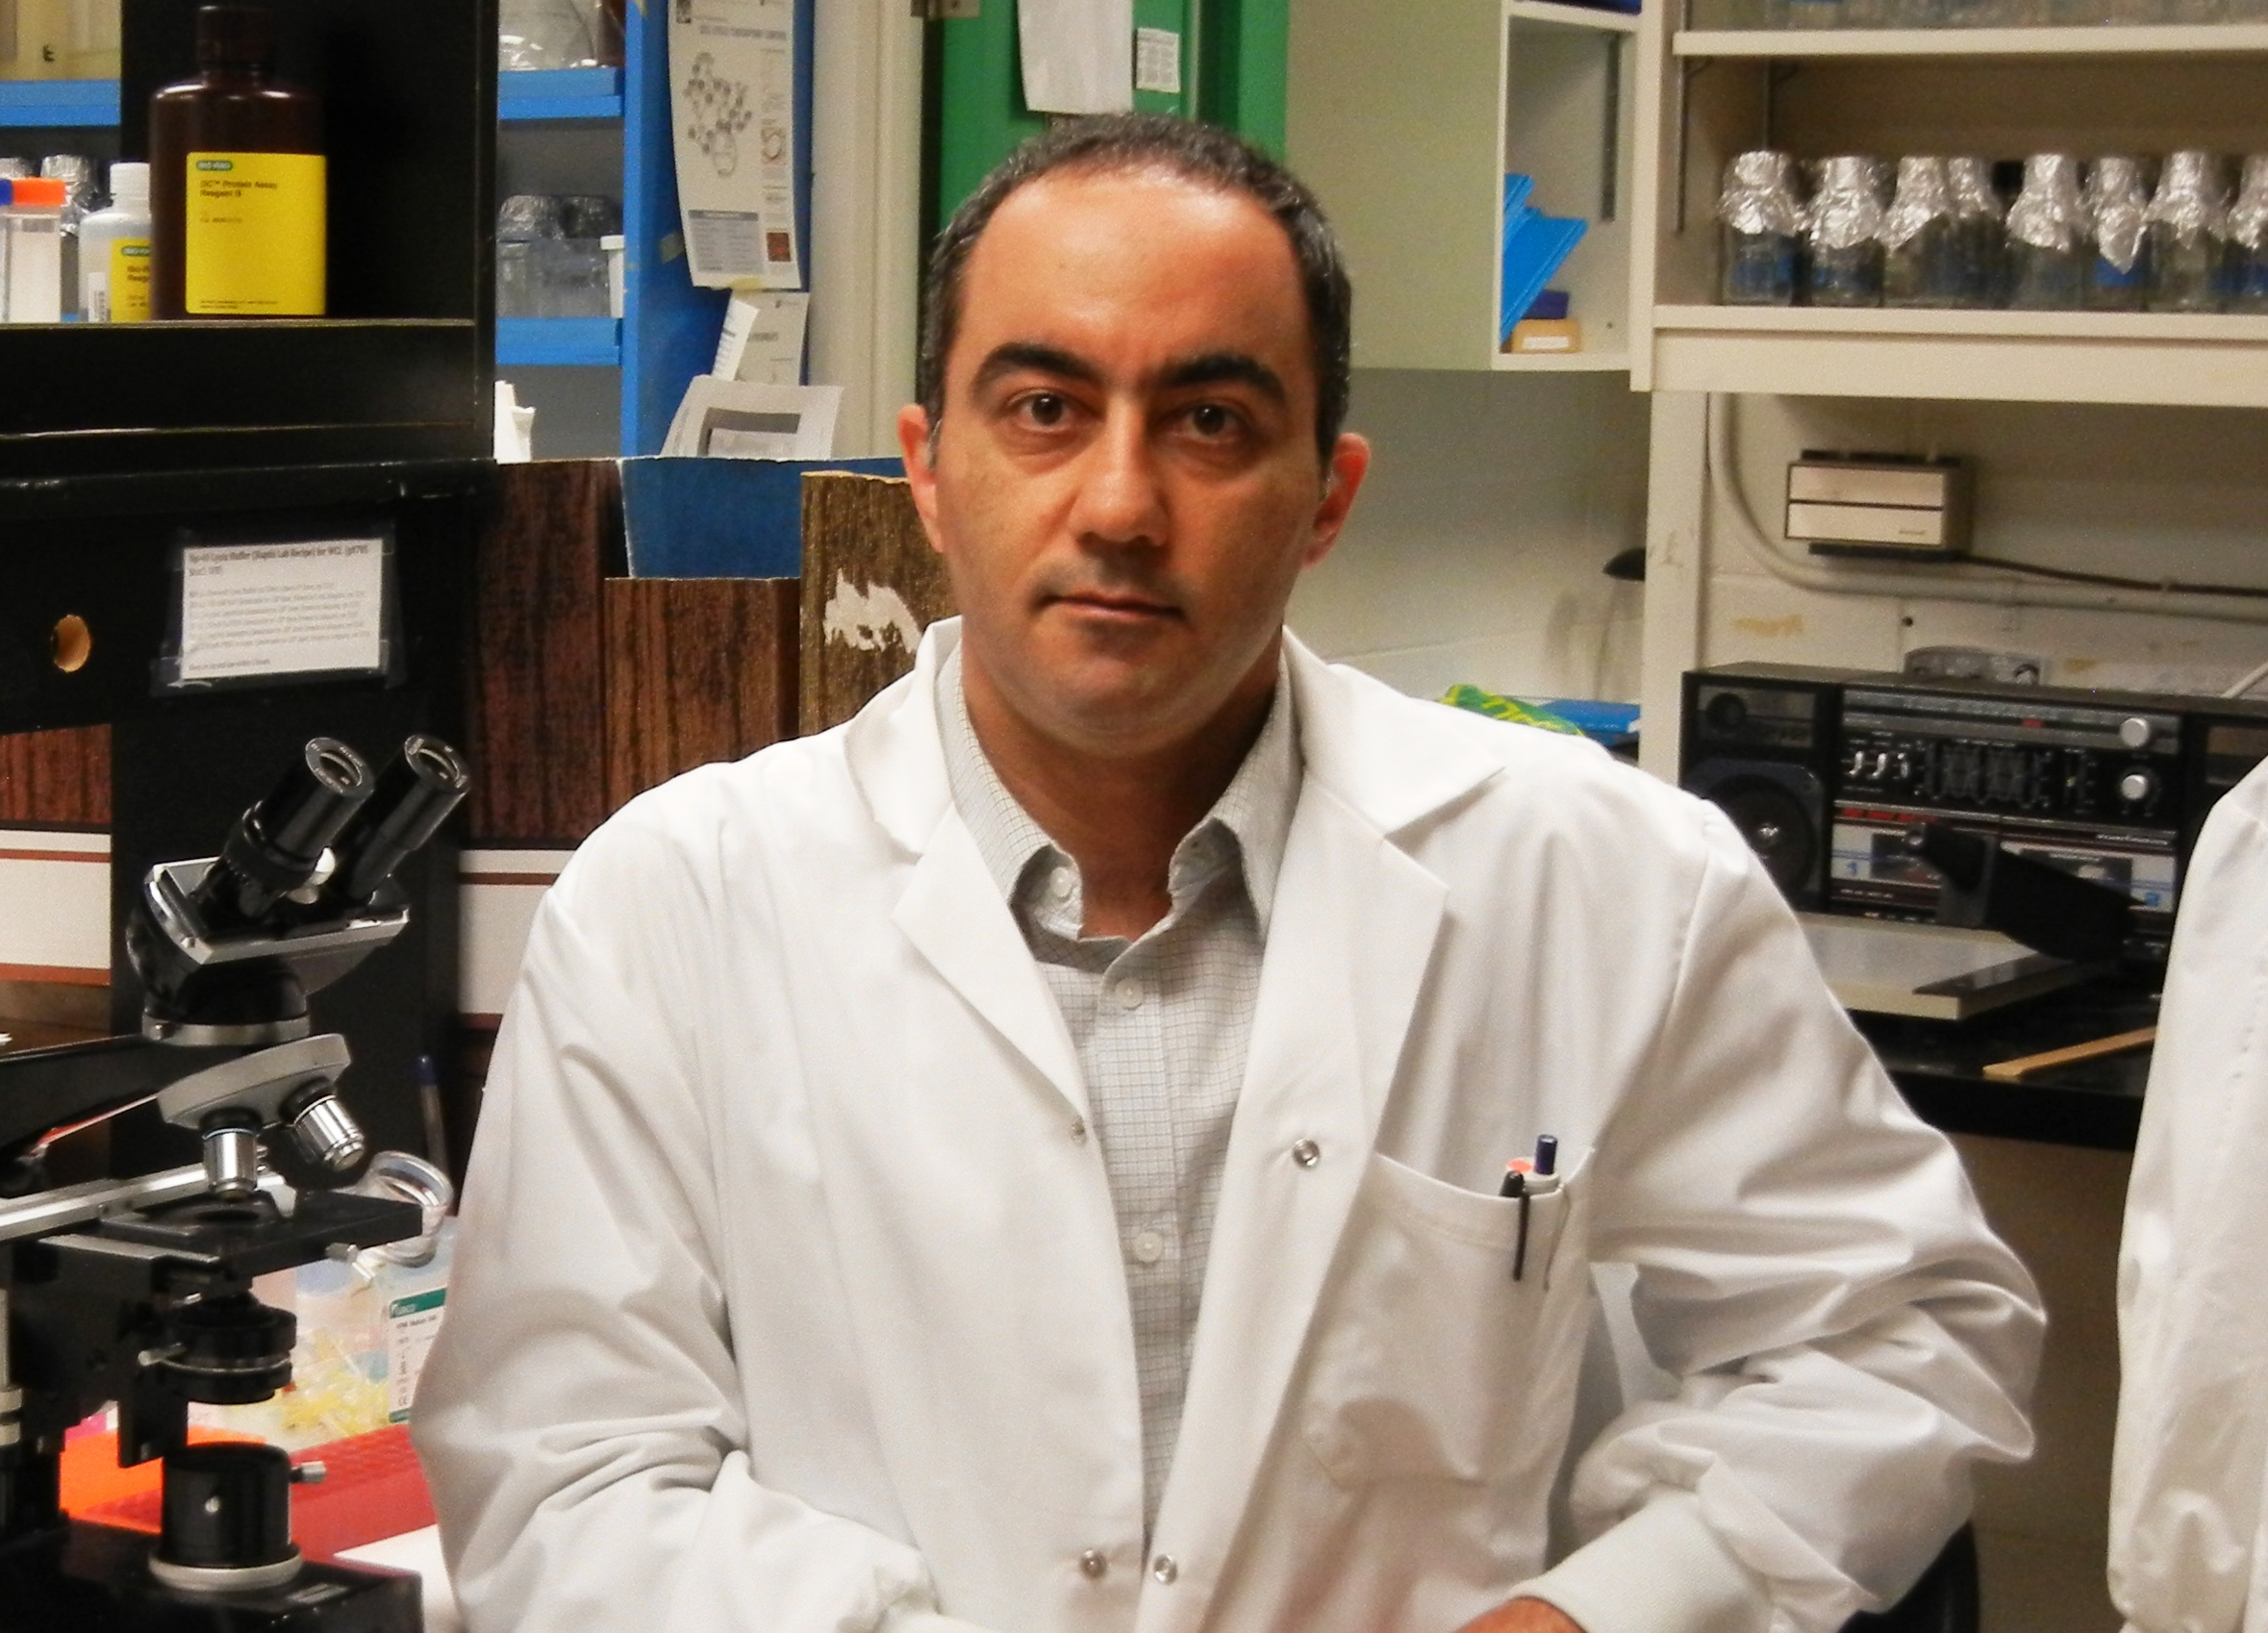 Abdi Ghaffari, PhD - Founder and CSOA scientist with over 20 years experience in development of novel technologies and experimental models in fields of oncology, inhaled nitric oxide therapy, respiratory infection, and wound healing.